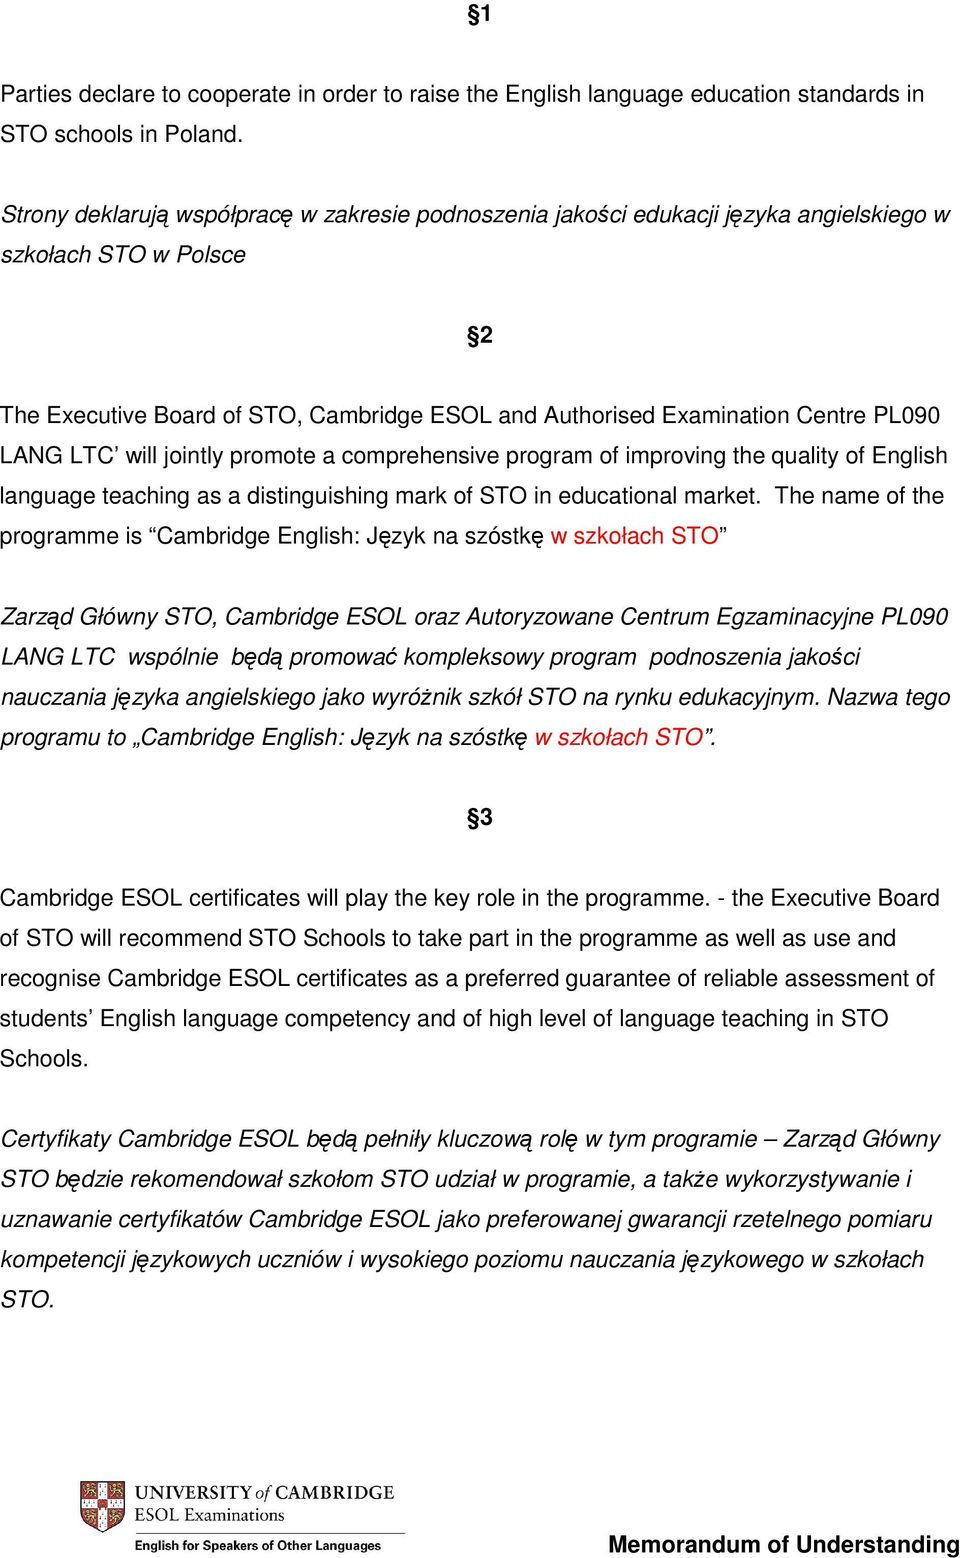 LANG LTC will jointly promote a comprehensive program of improving the quality of English language teaching as a distinguishing mark of STO in educational market.